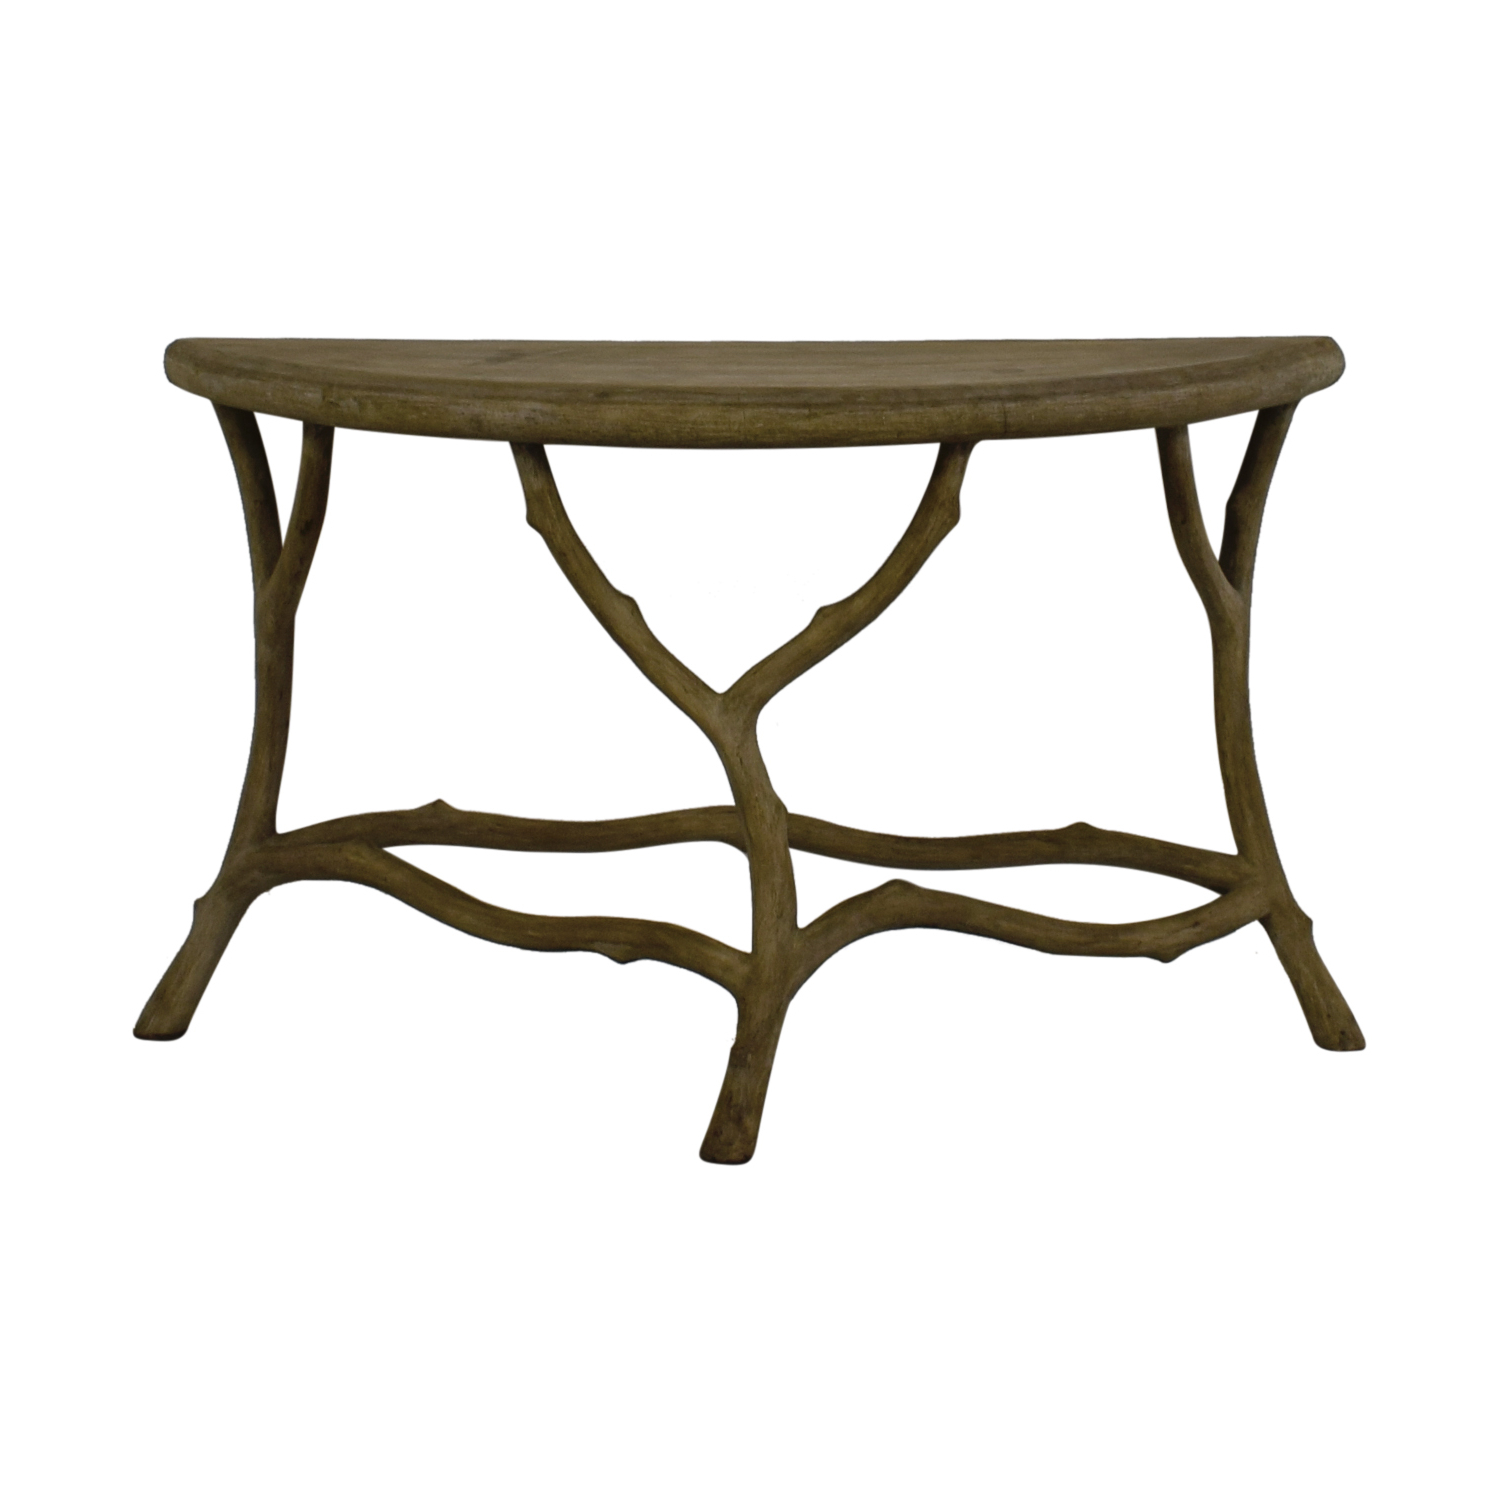 [%90% Off – Horchow Horchow Grey Faux Bois Half Table / Tables In Well Known Faux Bois Coffee Tables|faux Bois Coffee Tables Throughout Popular 90% Off – Horchow Horchow Grey Faux Bois Half Table / Tables|fashionable Faux Bois Coffee Tables Pertaining To 90% Off – Horchow Horchow Grey Faux Bois Half Table / Tables|most Current 90% Off – Horchow Horchow Grey Faux Bois Half Table / Tables Within Faux Bois Coffee Tables%] (View 17 of 20)